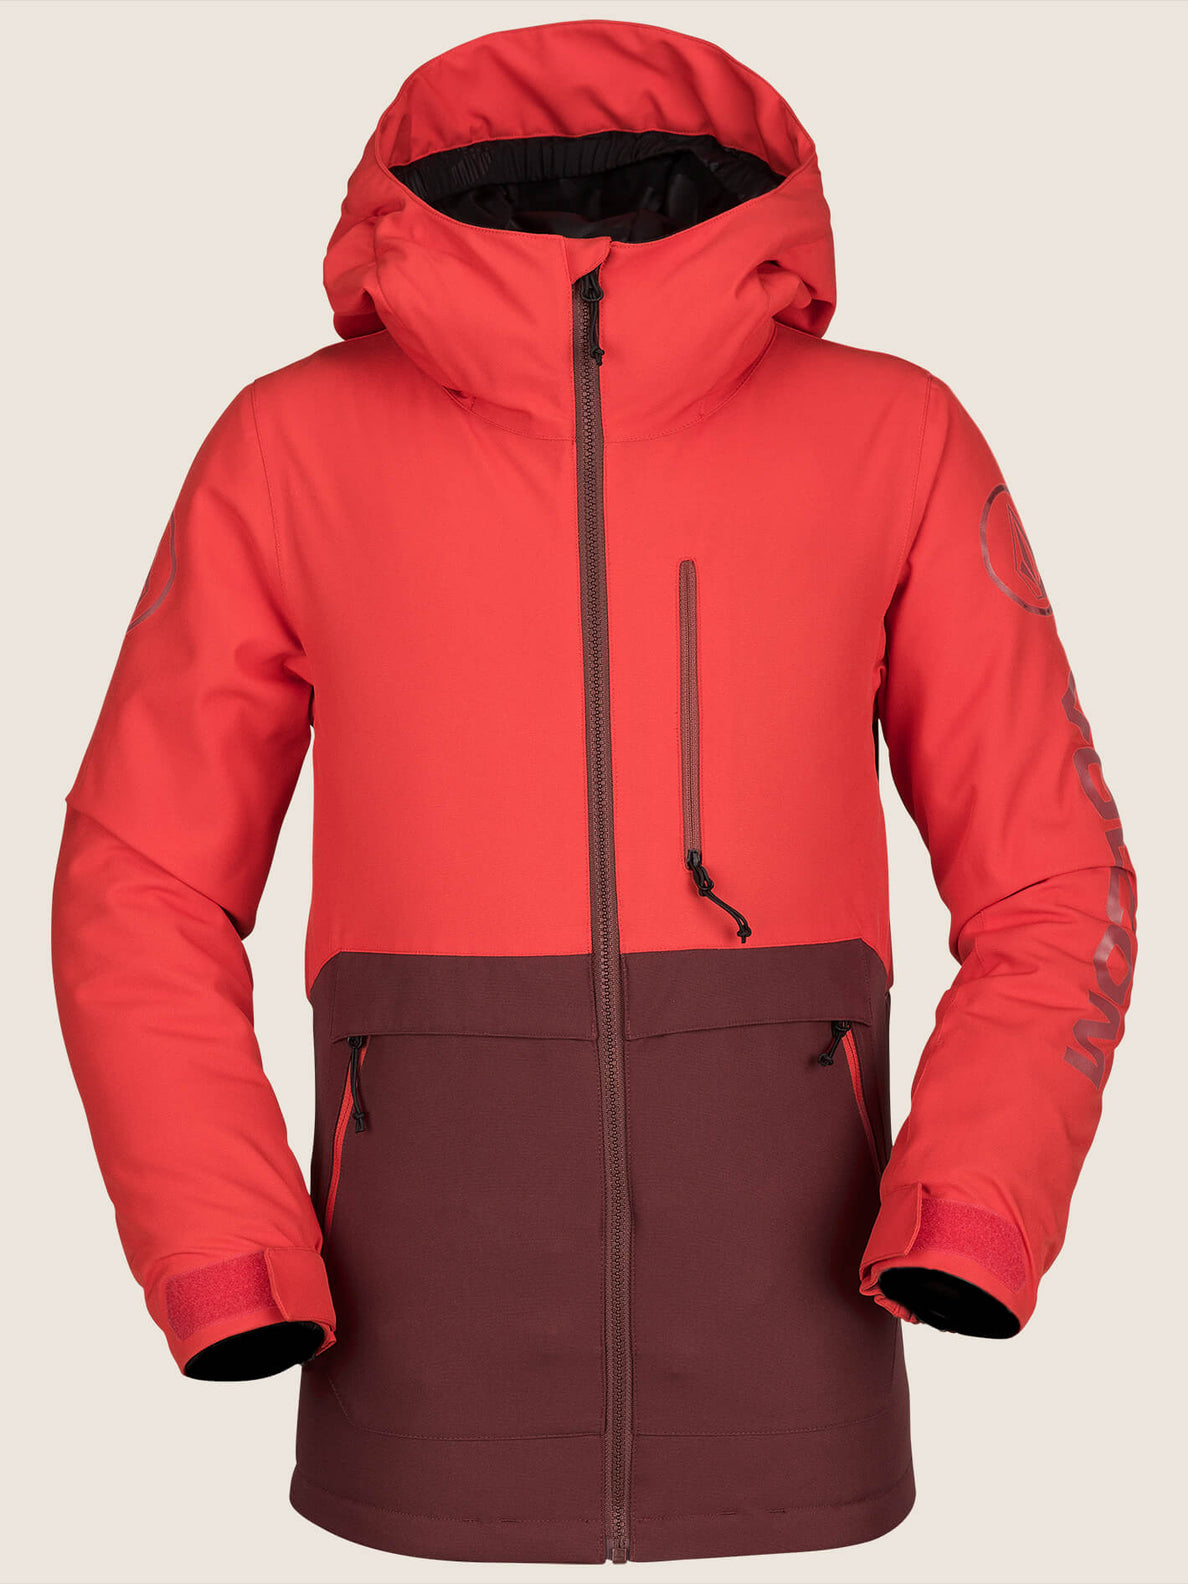 Holbeck Insulated Jacket In Fire Red, Front View